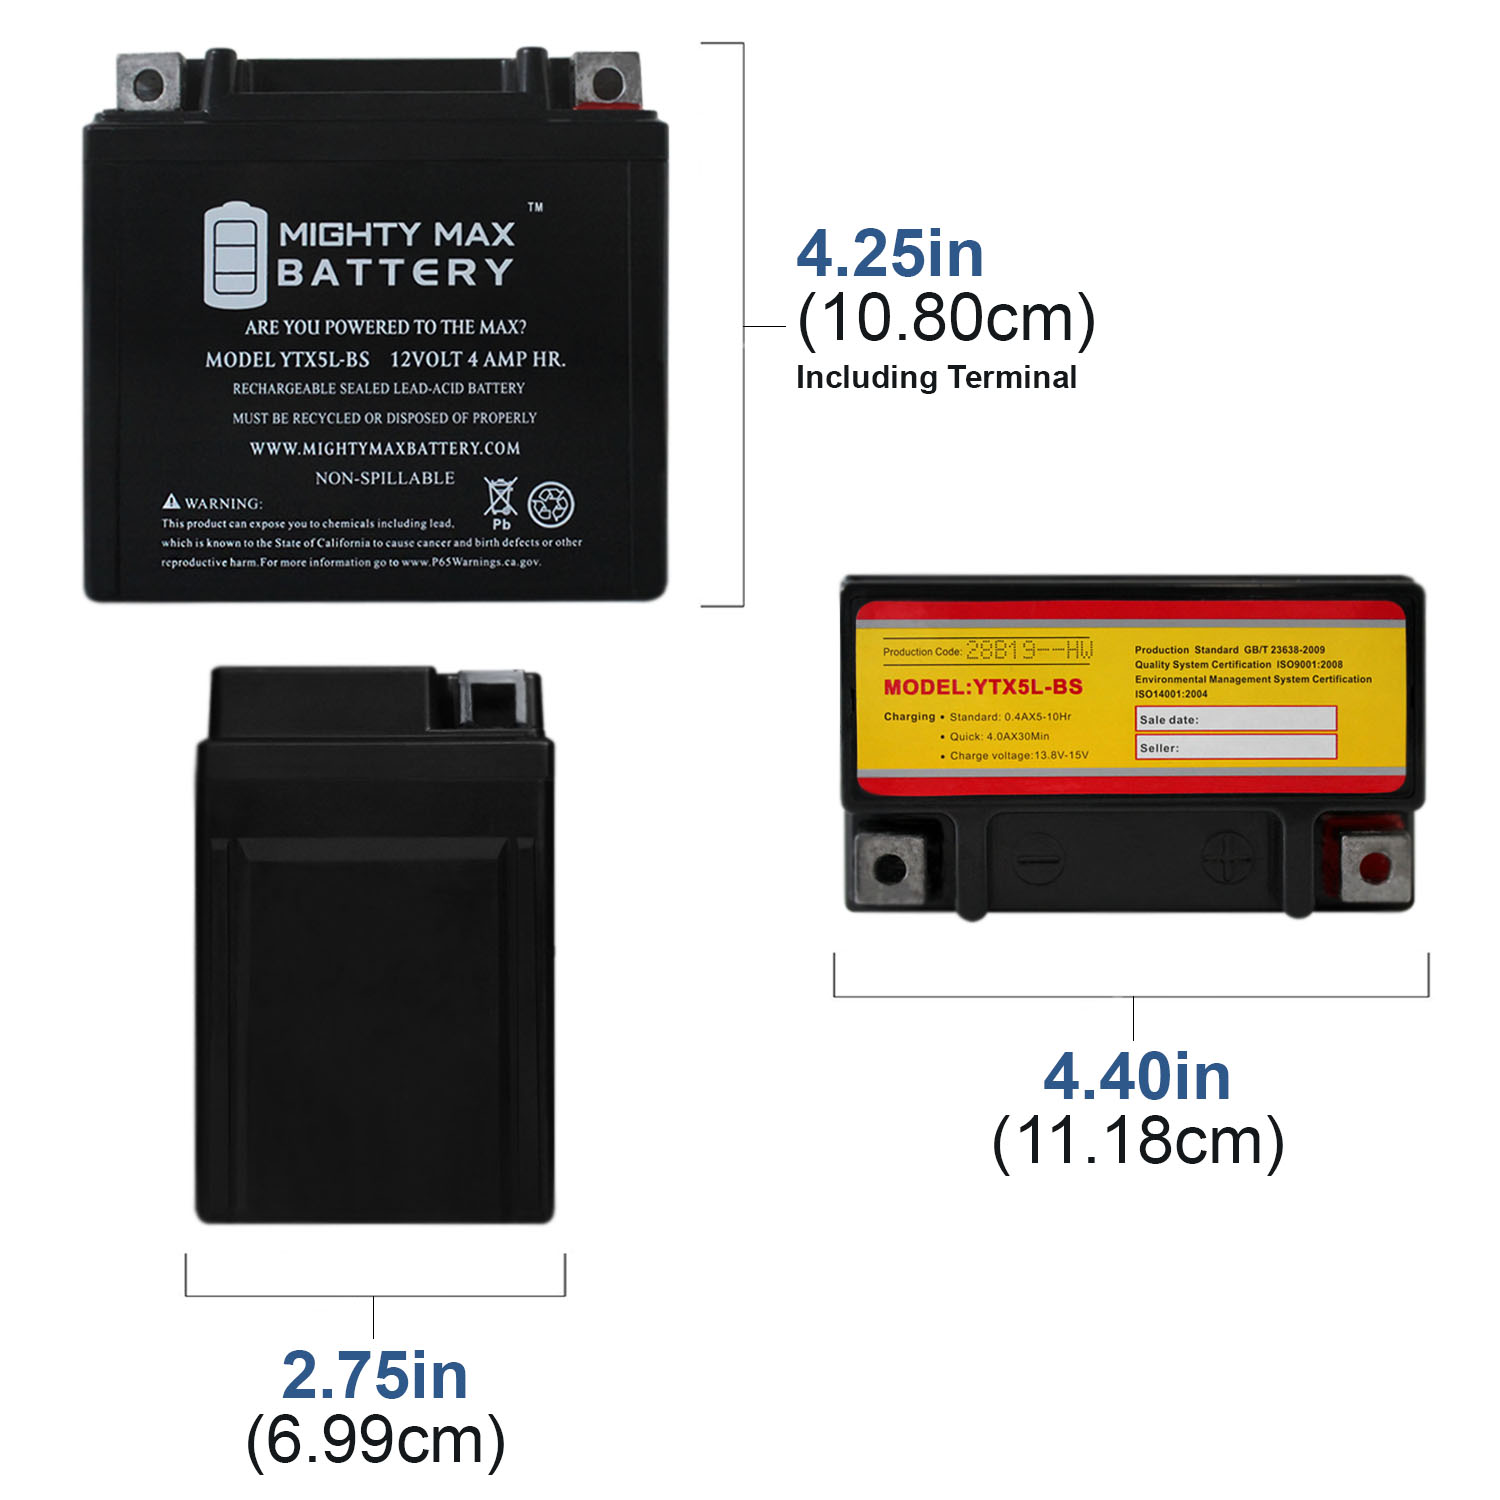 YTX5L-BS MOTORCYCLE BATTERY REPLACEMENT - 12V 4AH - 55 CCA - 1